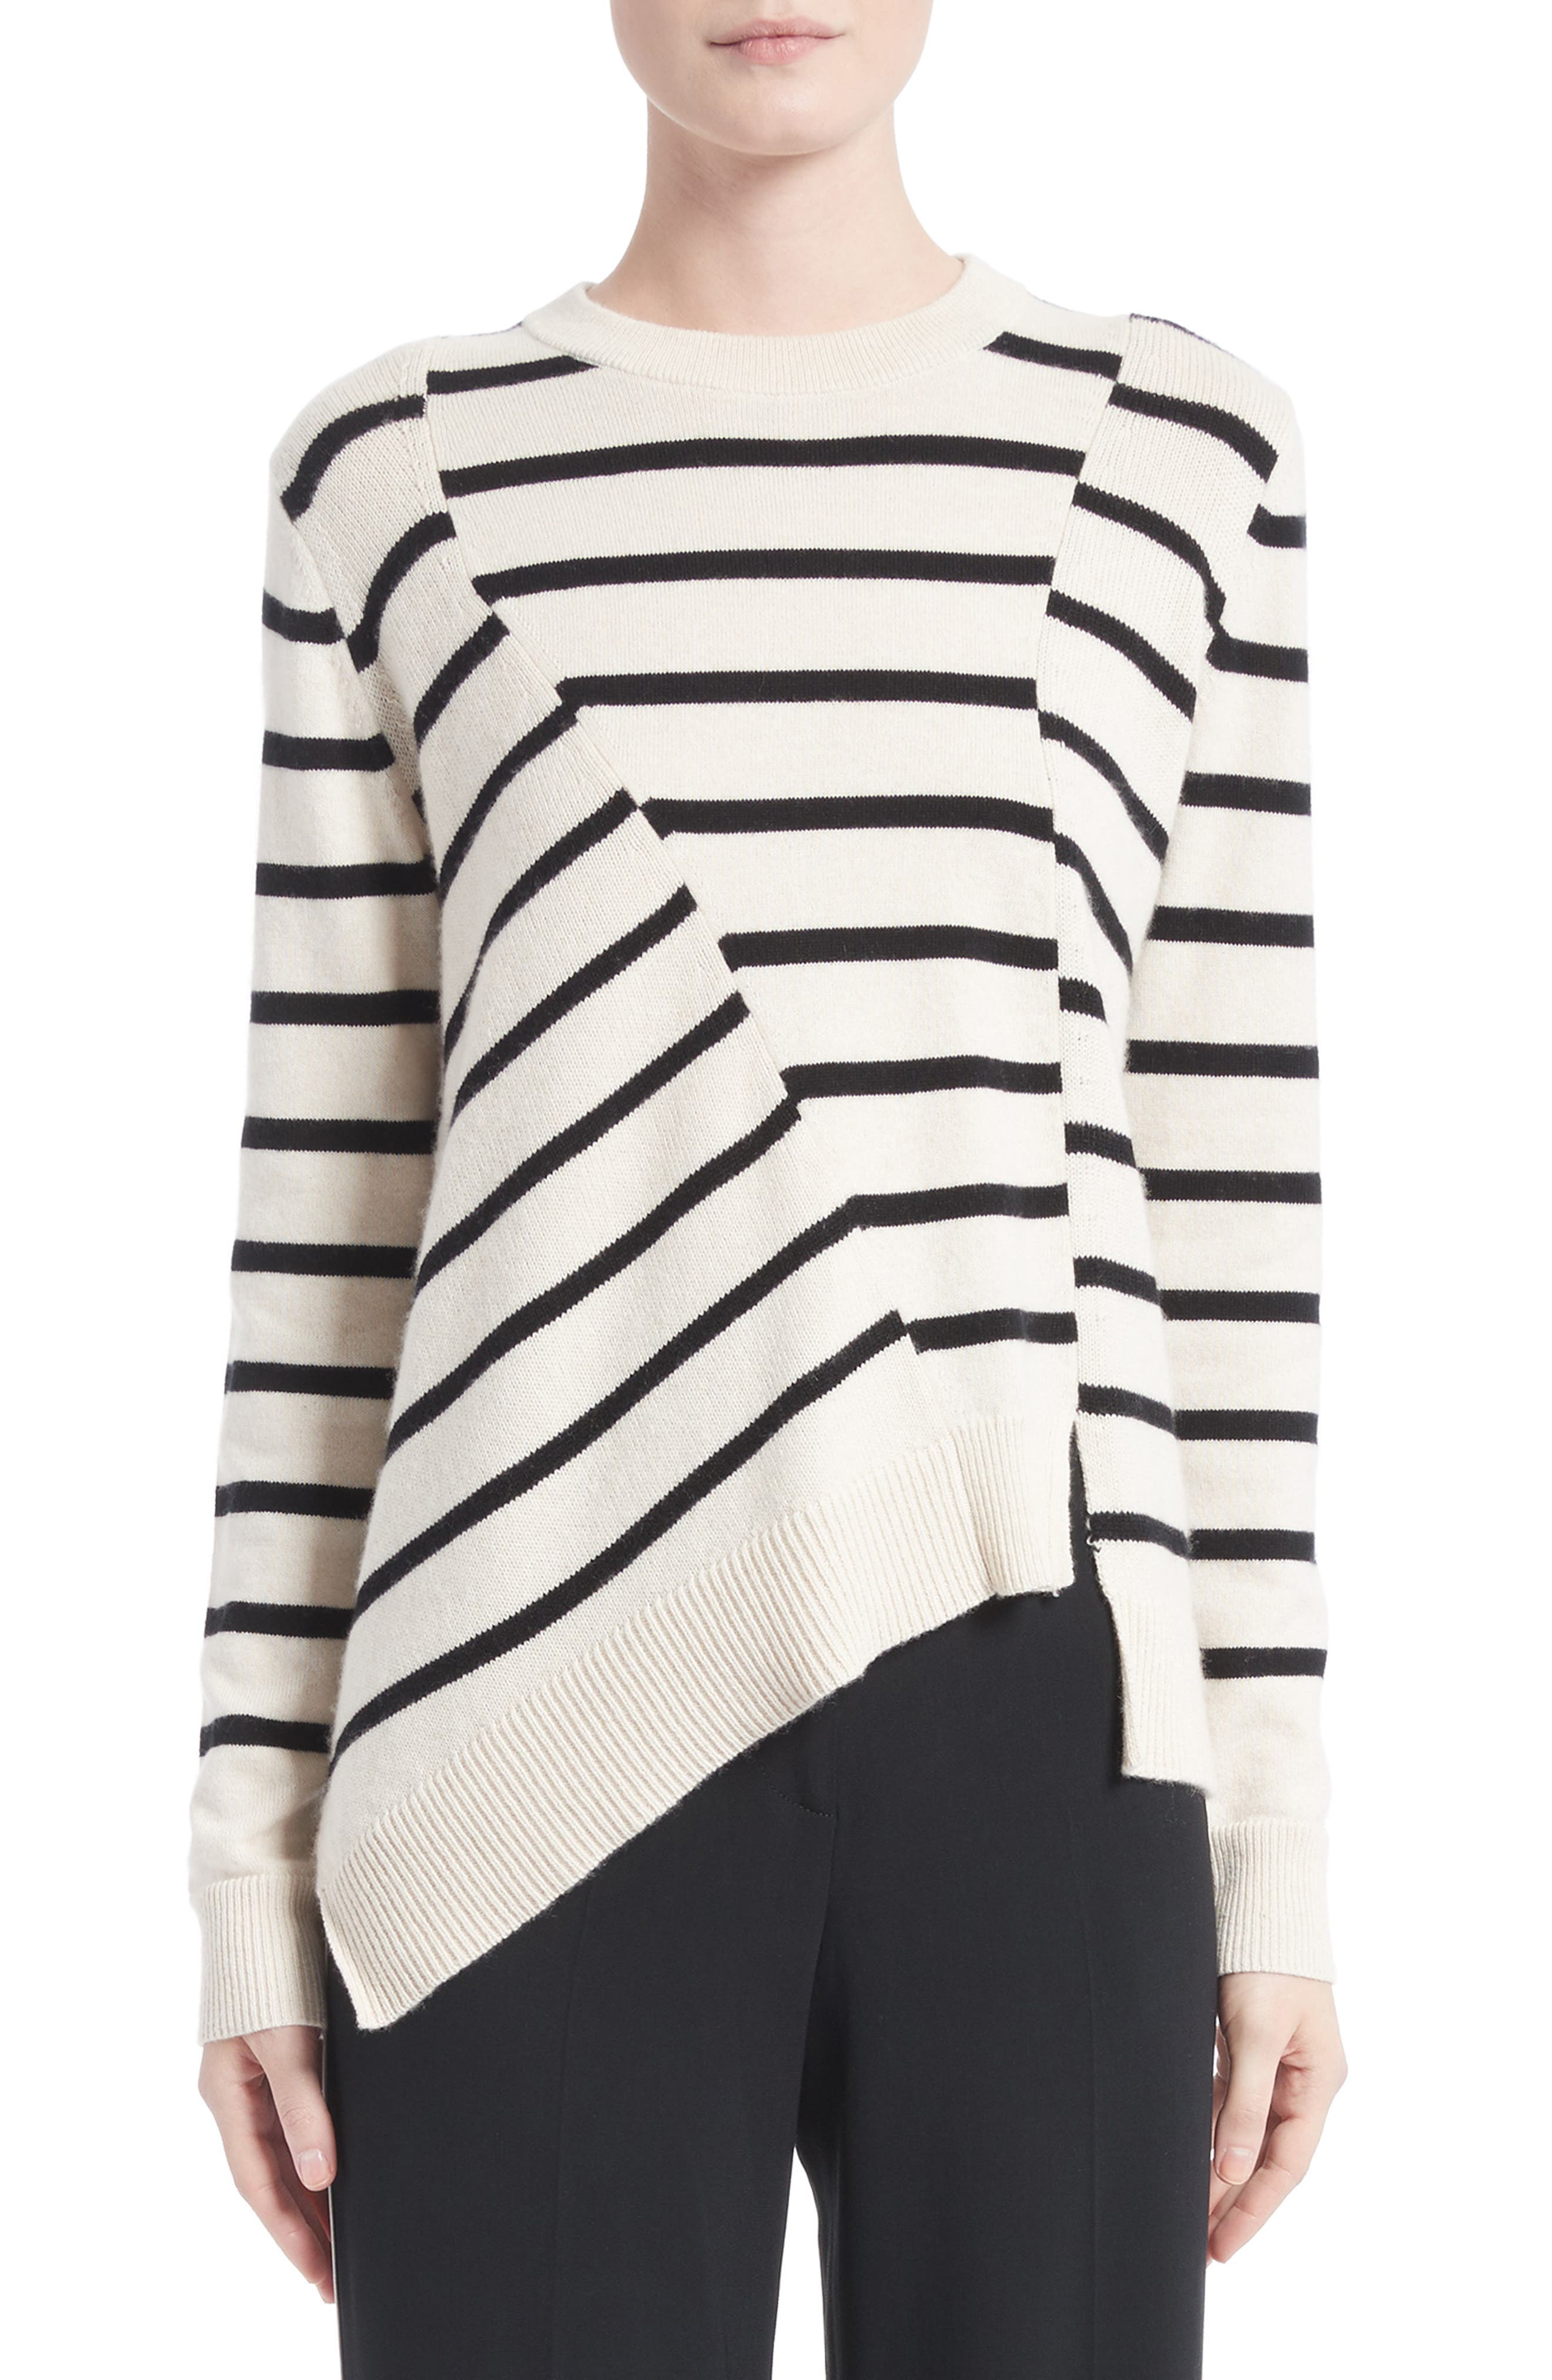 Alternate Image 1 Selected - Proenza Schouler Cotton & Cashmere Asymmetrical Stripe Sweater